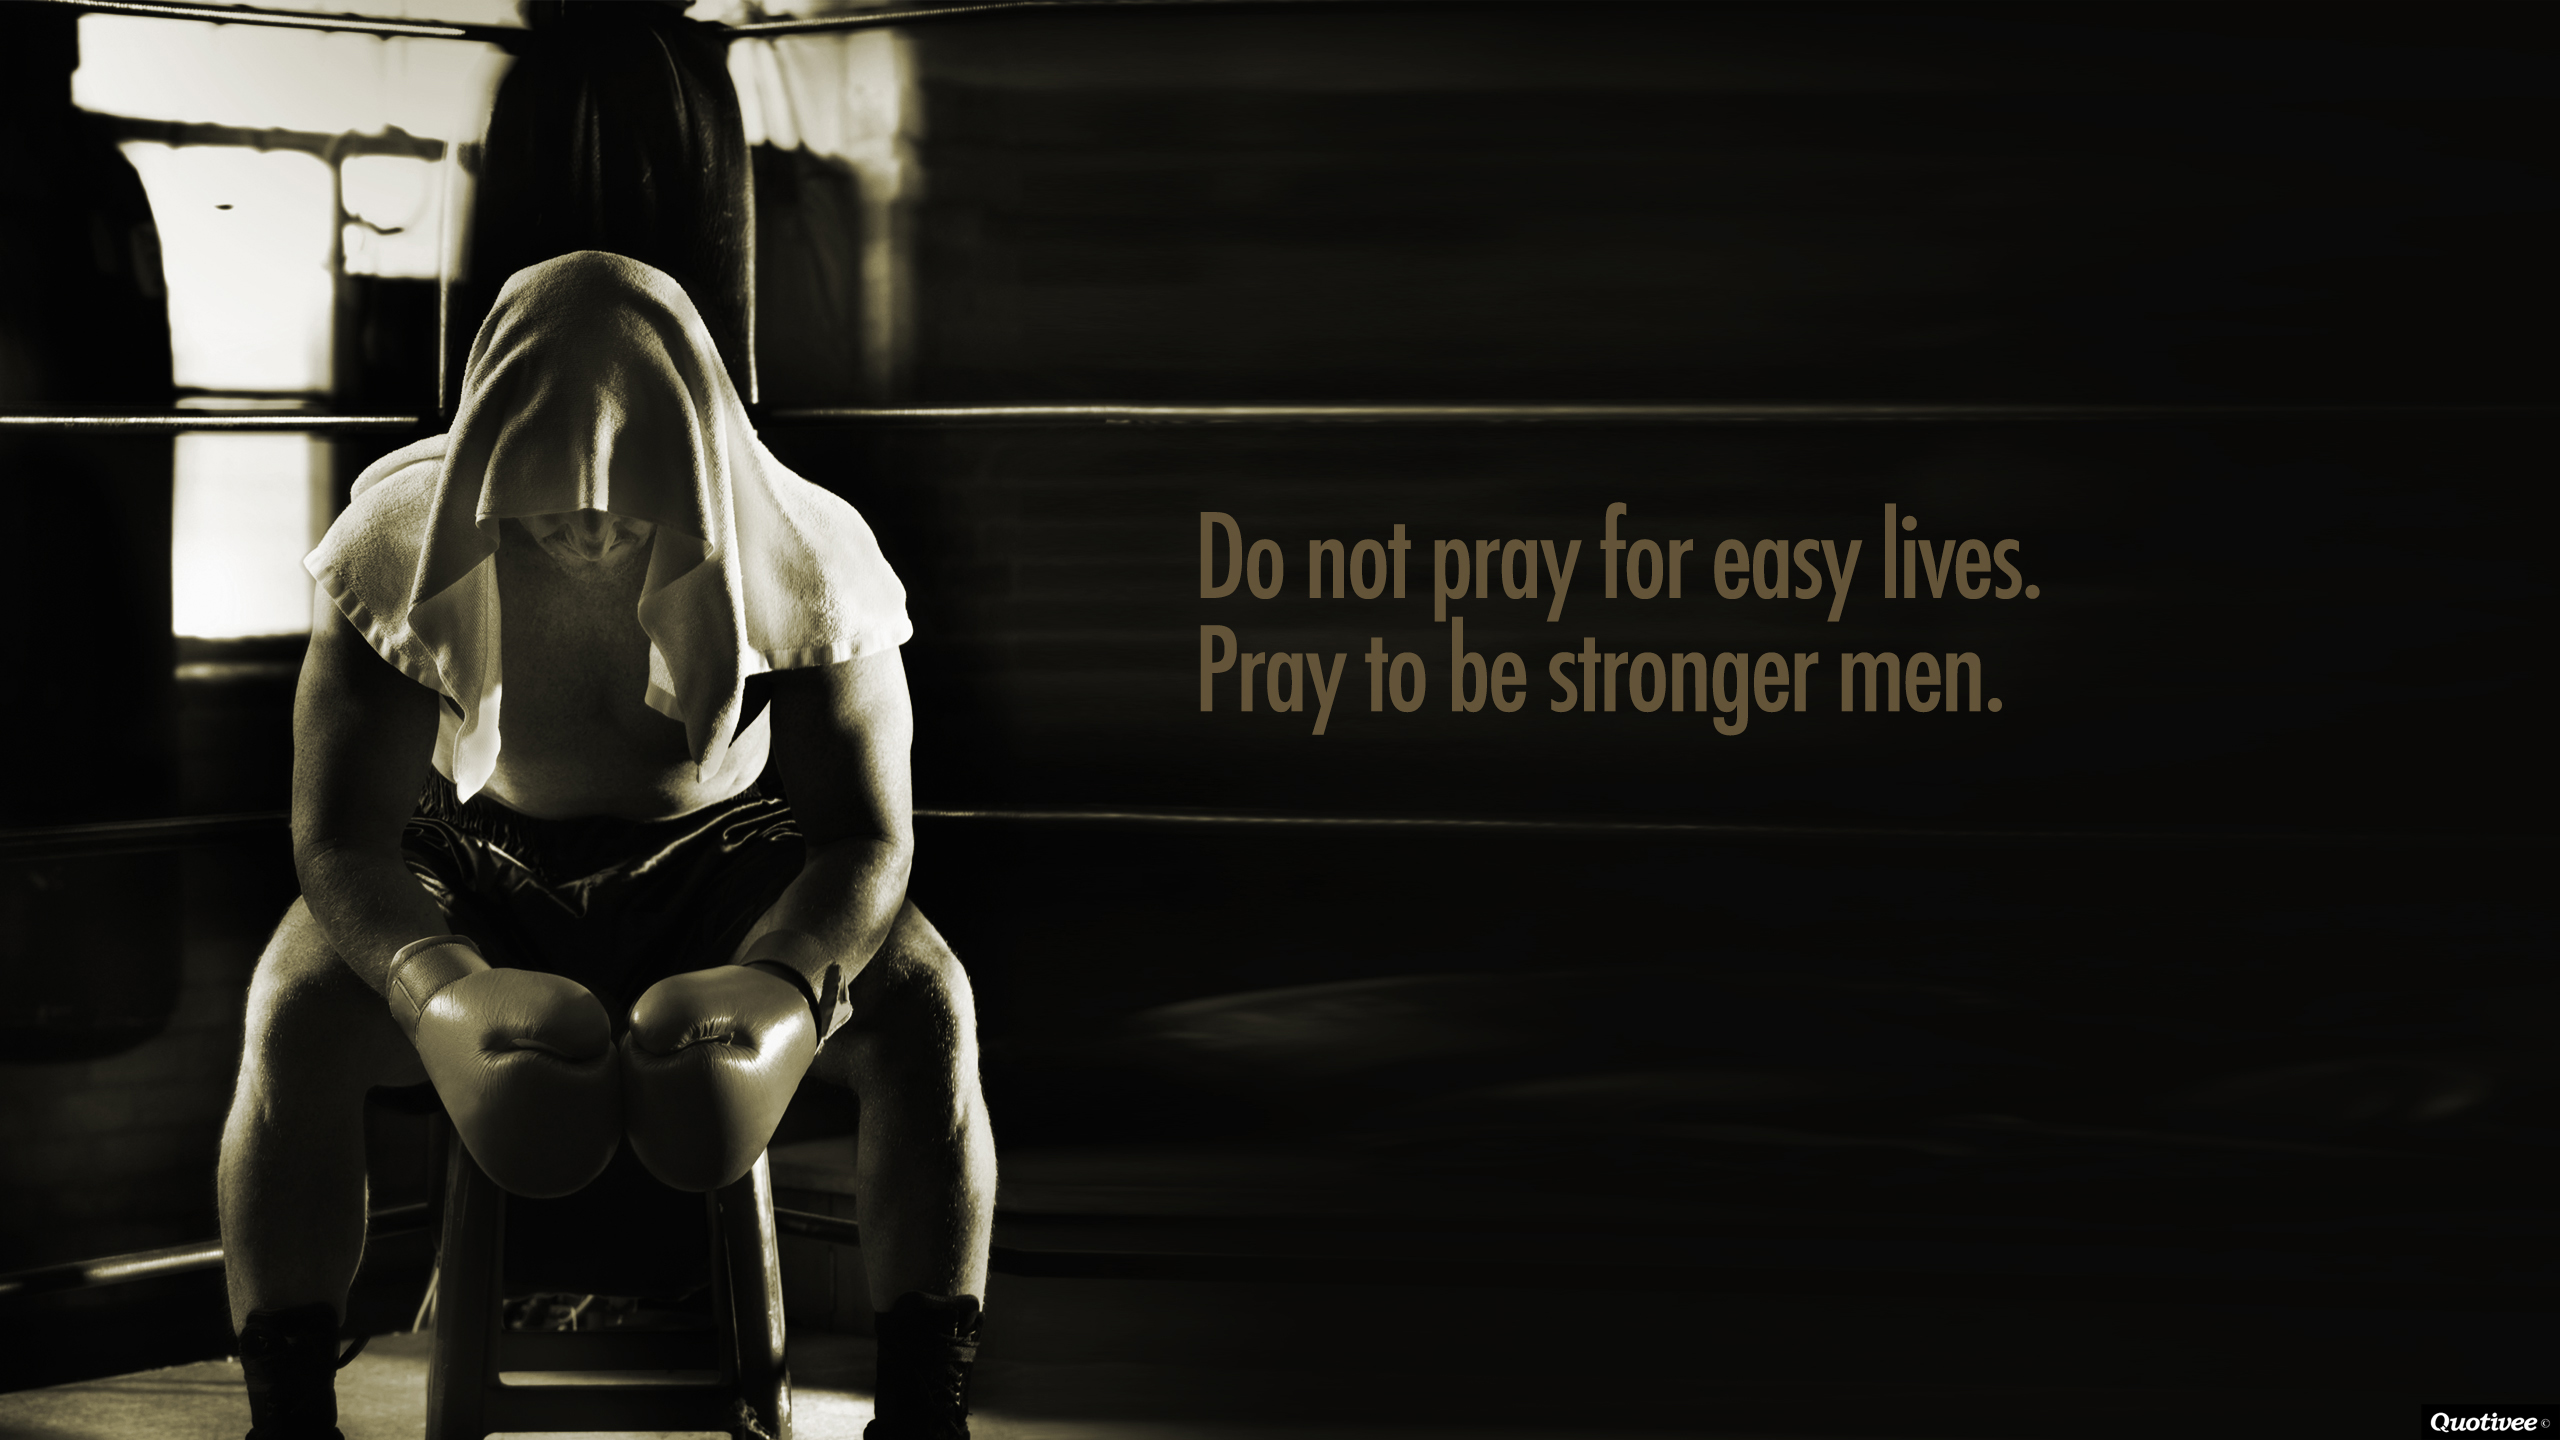 Fitness Inspiration Wallpaper Hd Do Not Pray For Easy L...